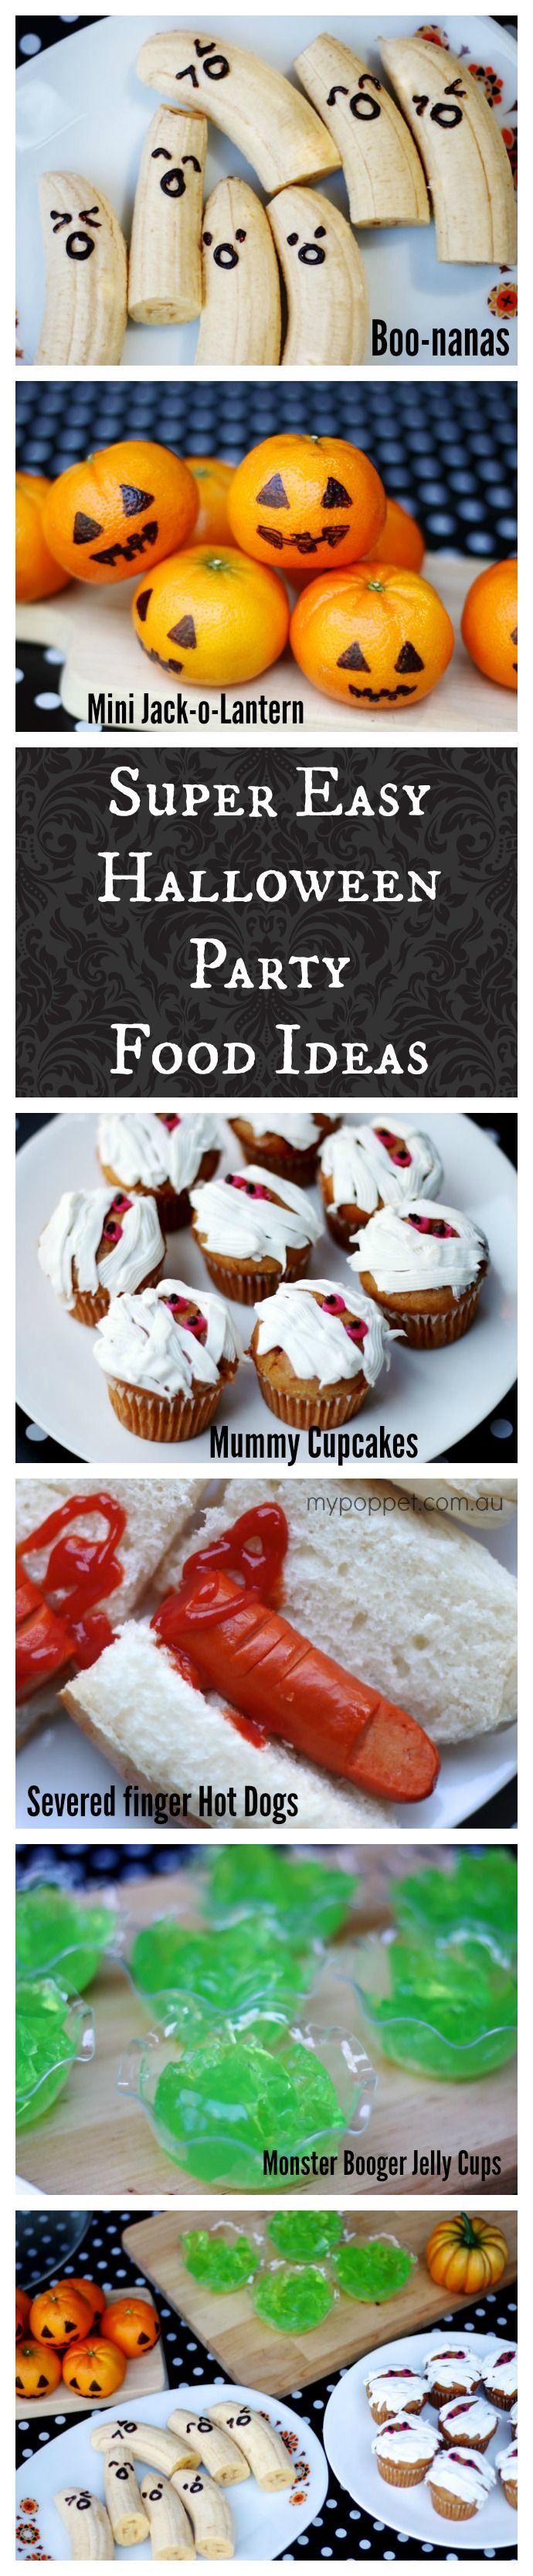 Lots of super easy Halloween Party food Ideas that take no time at all to make   - mypoppet.com.au/living